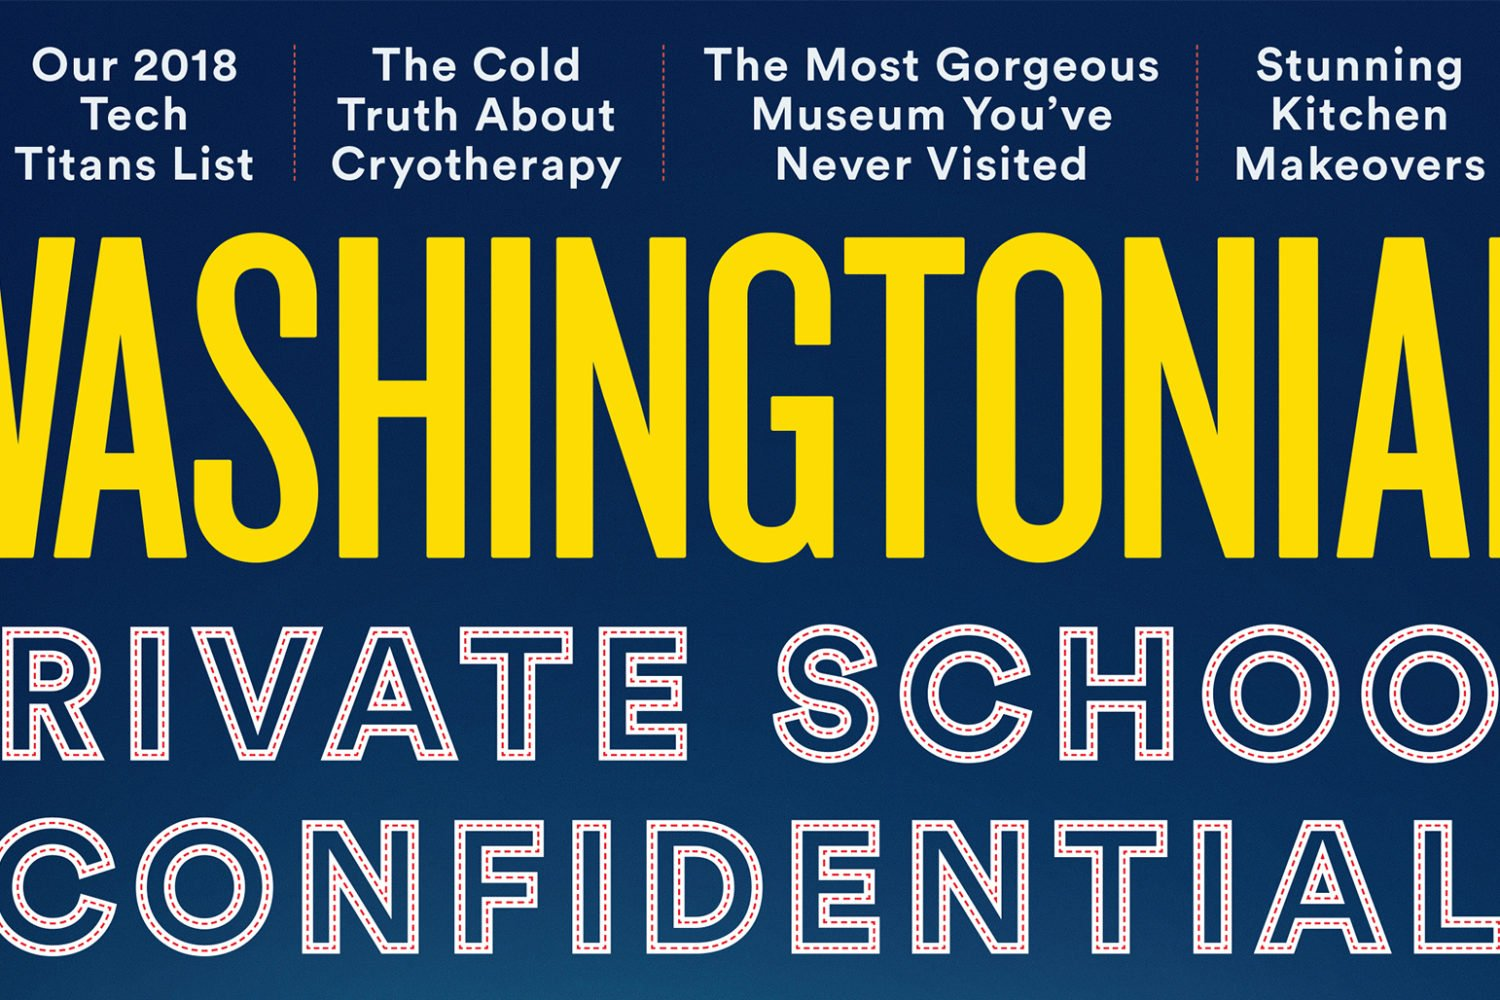 October 2018: Private School Confidential